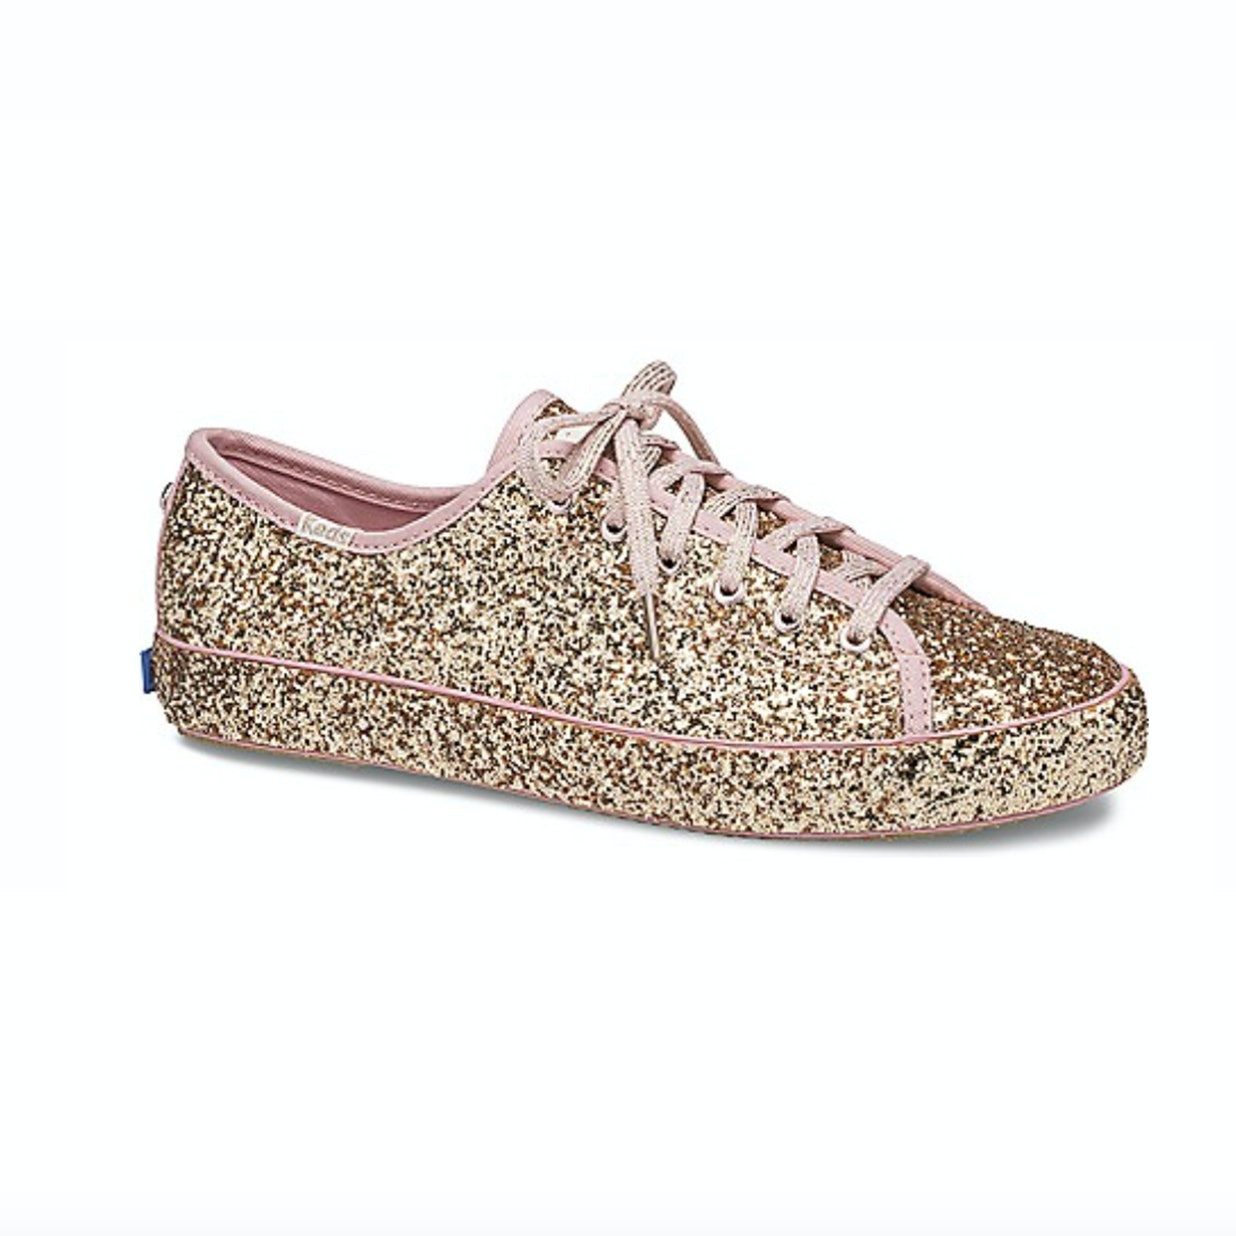 00d5b8341804 Keds  2018 Black Friday Sale Gives You Plenty Of Time To Stock Up On Some  Cute New Sneakers